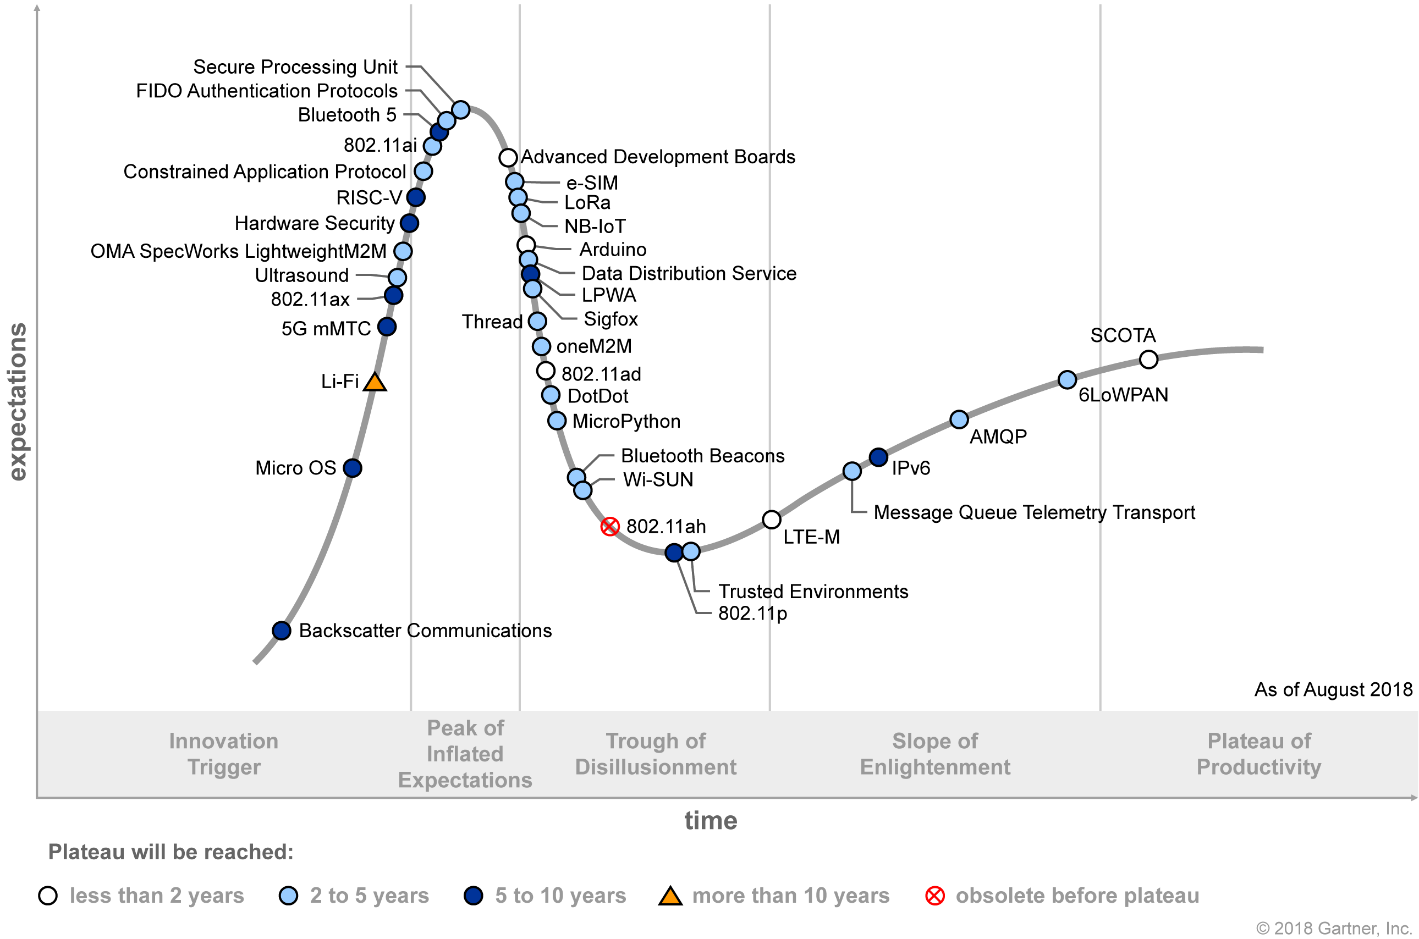 Gartner Hype Cycle for IoT Standards and Protocols 2018 (G00338610)